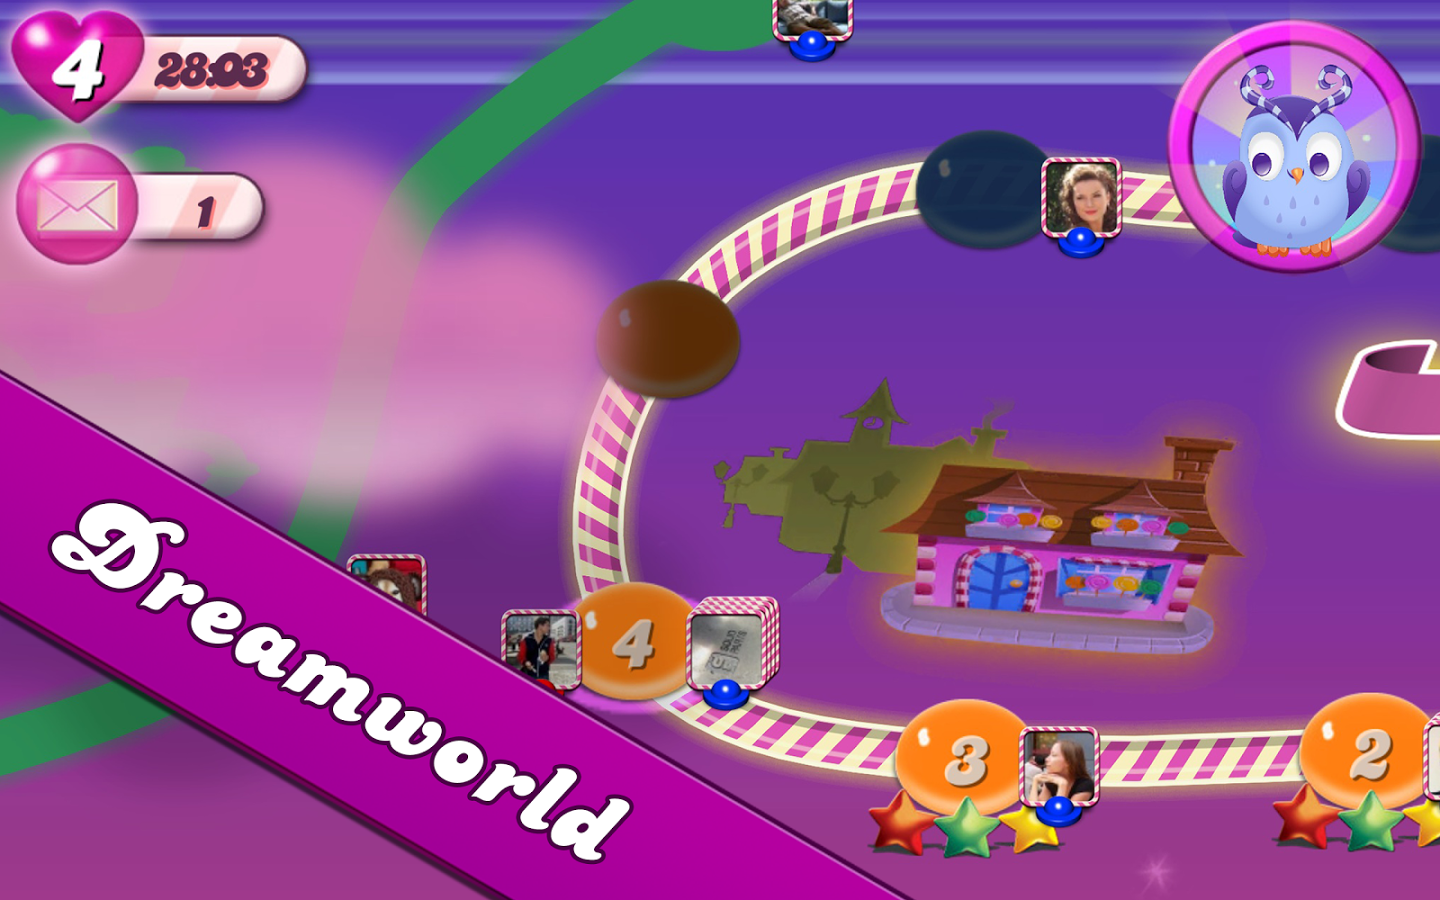 Candy Crush Saga Android Apk Oyun resimi